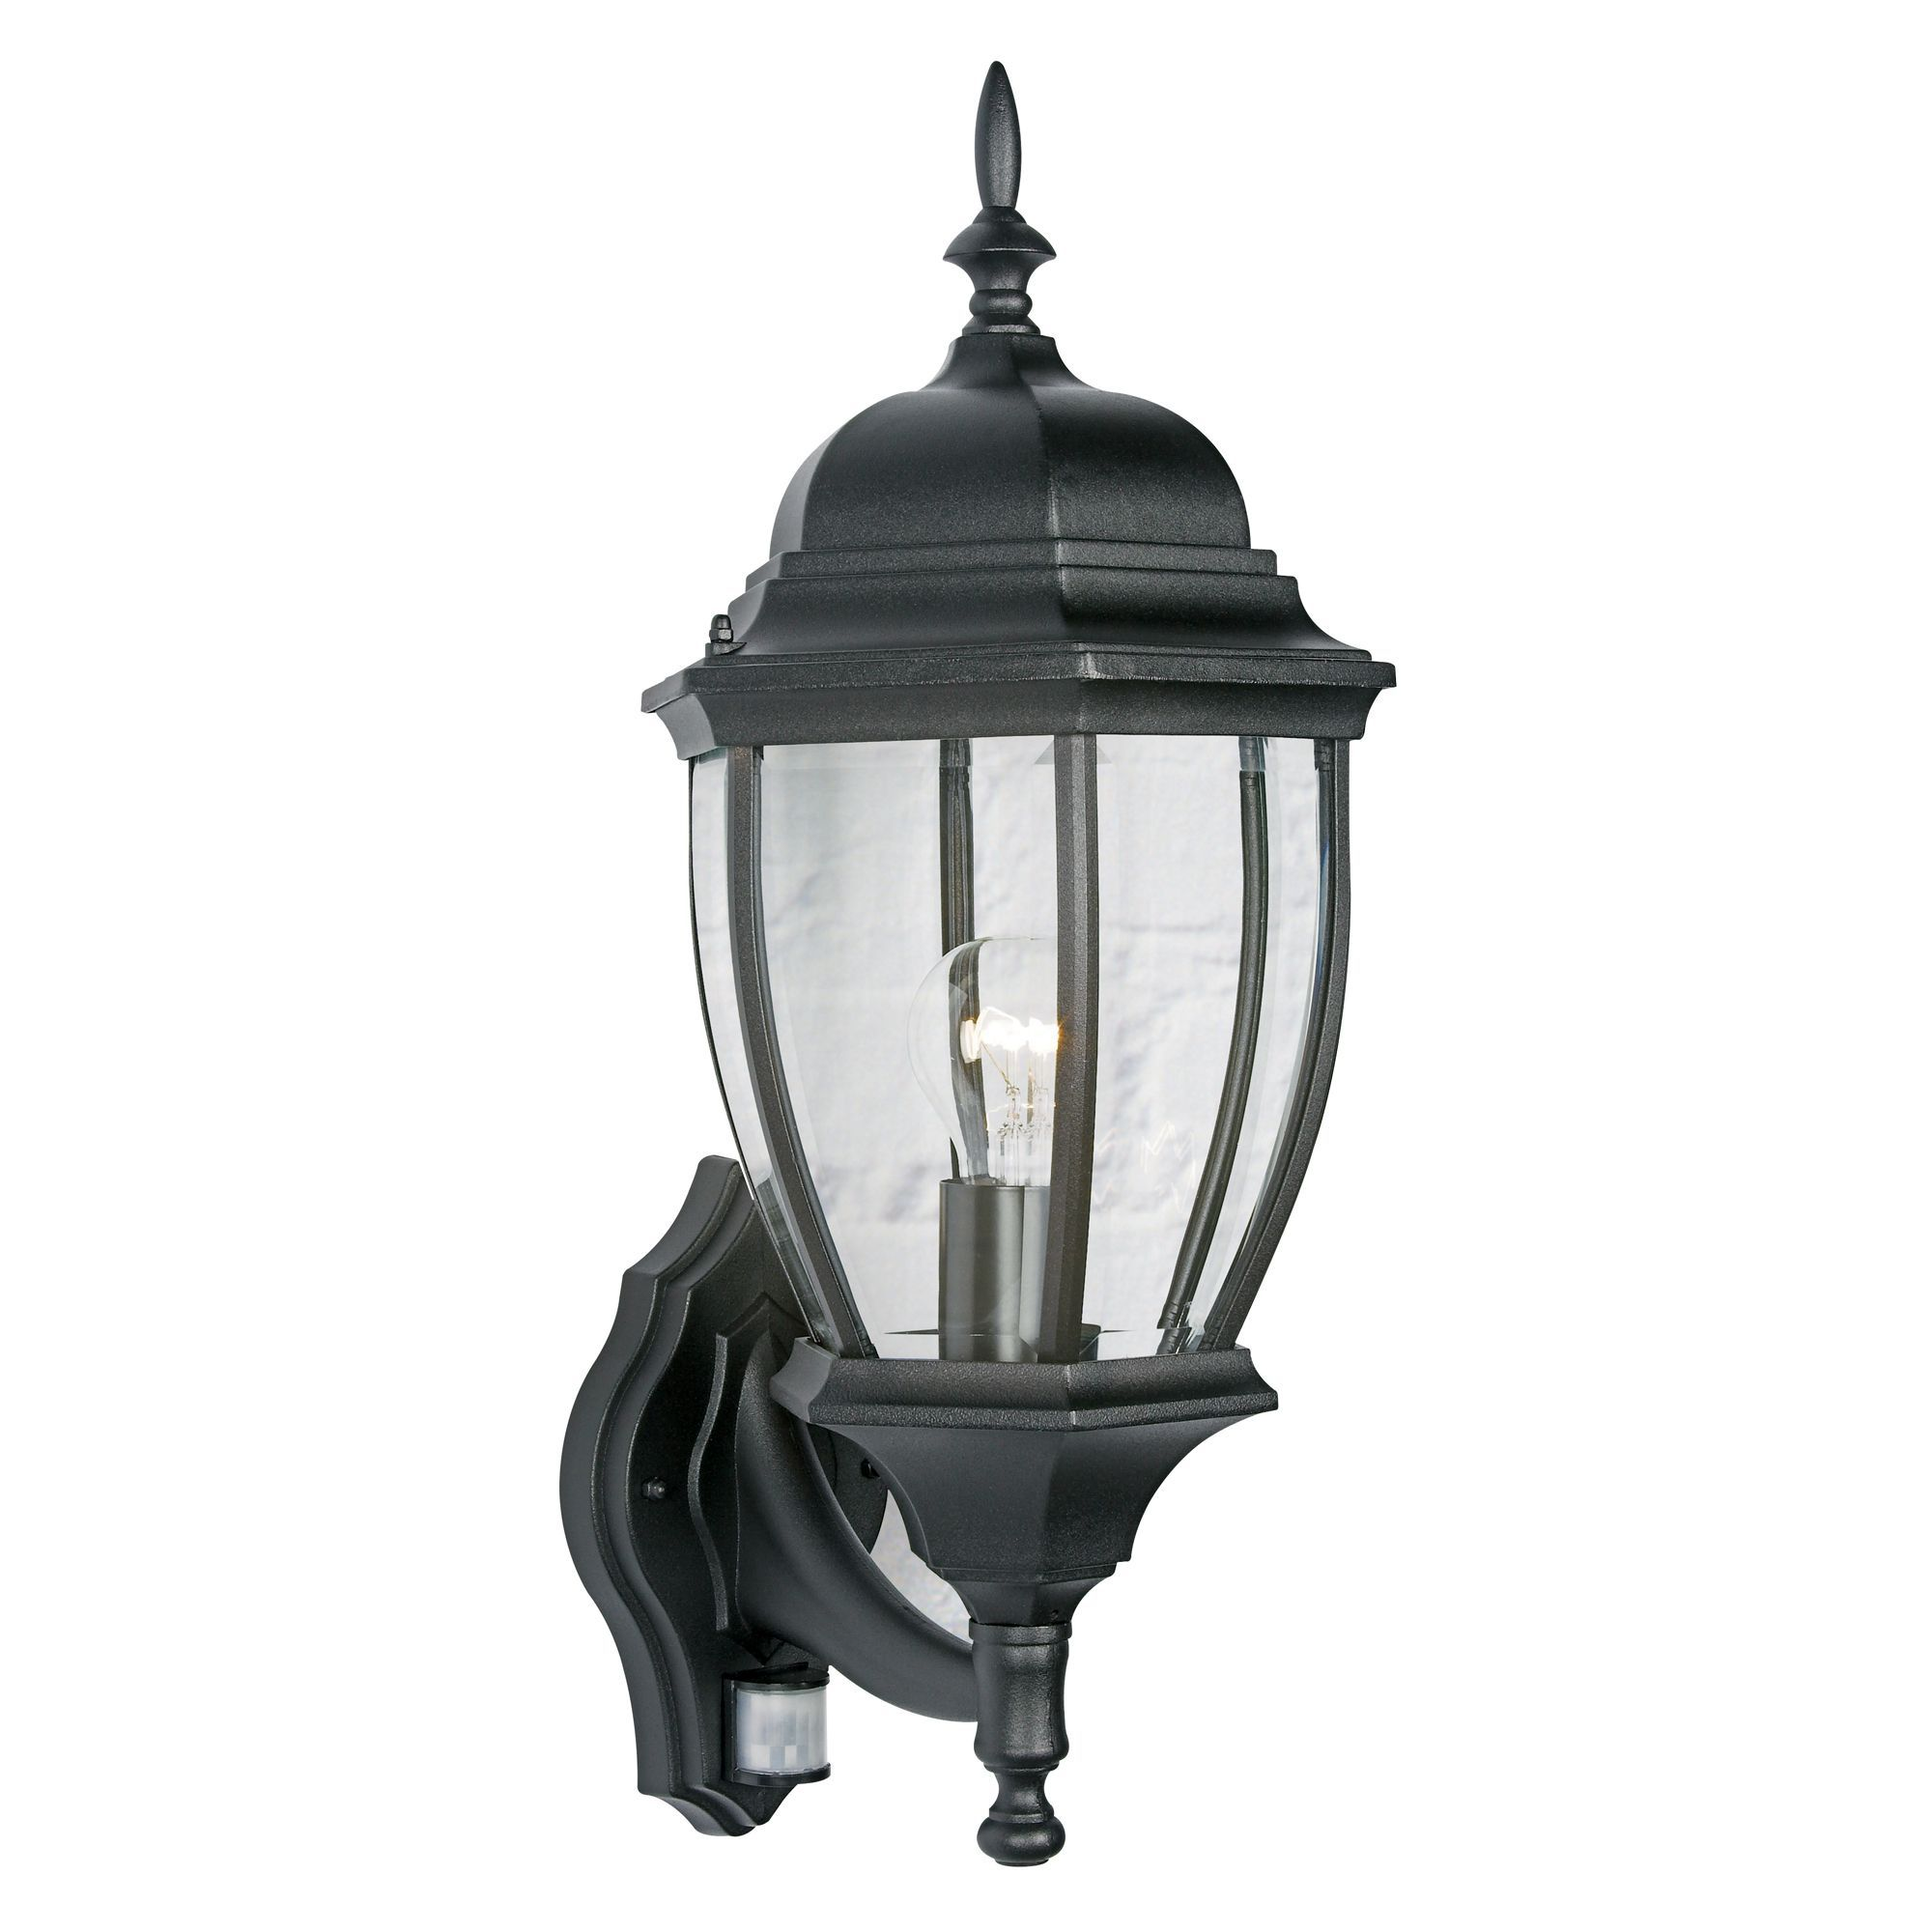 Lanark Black 60w Mains Powered External Pir Lantern Departments Diy